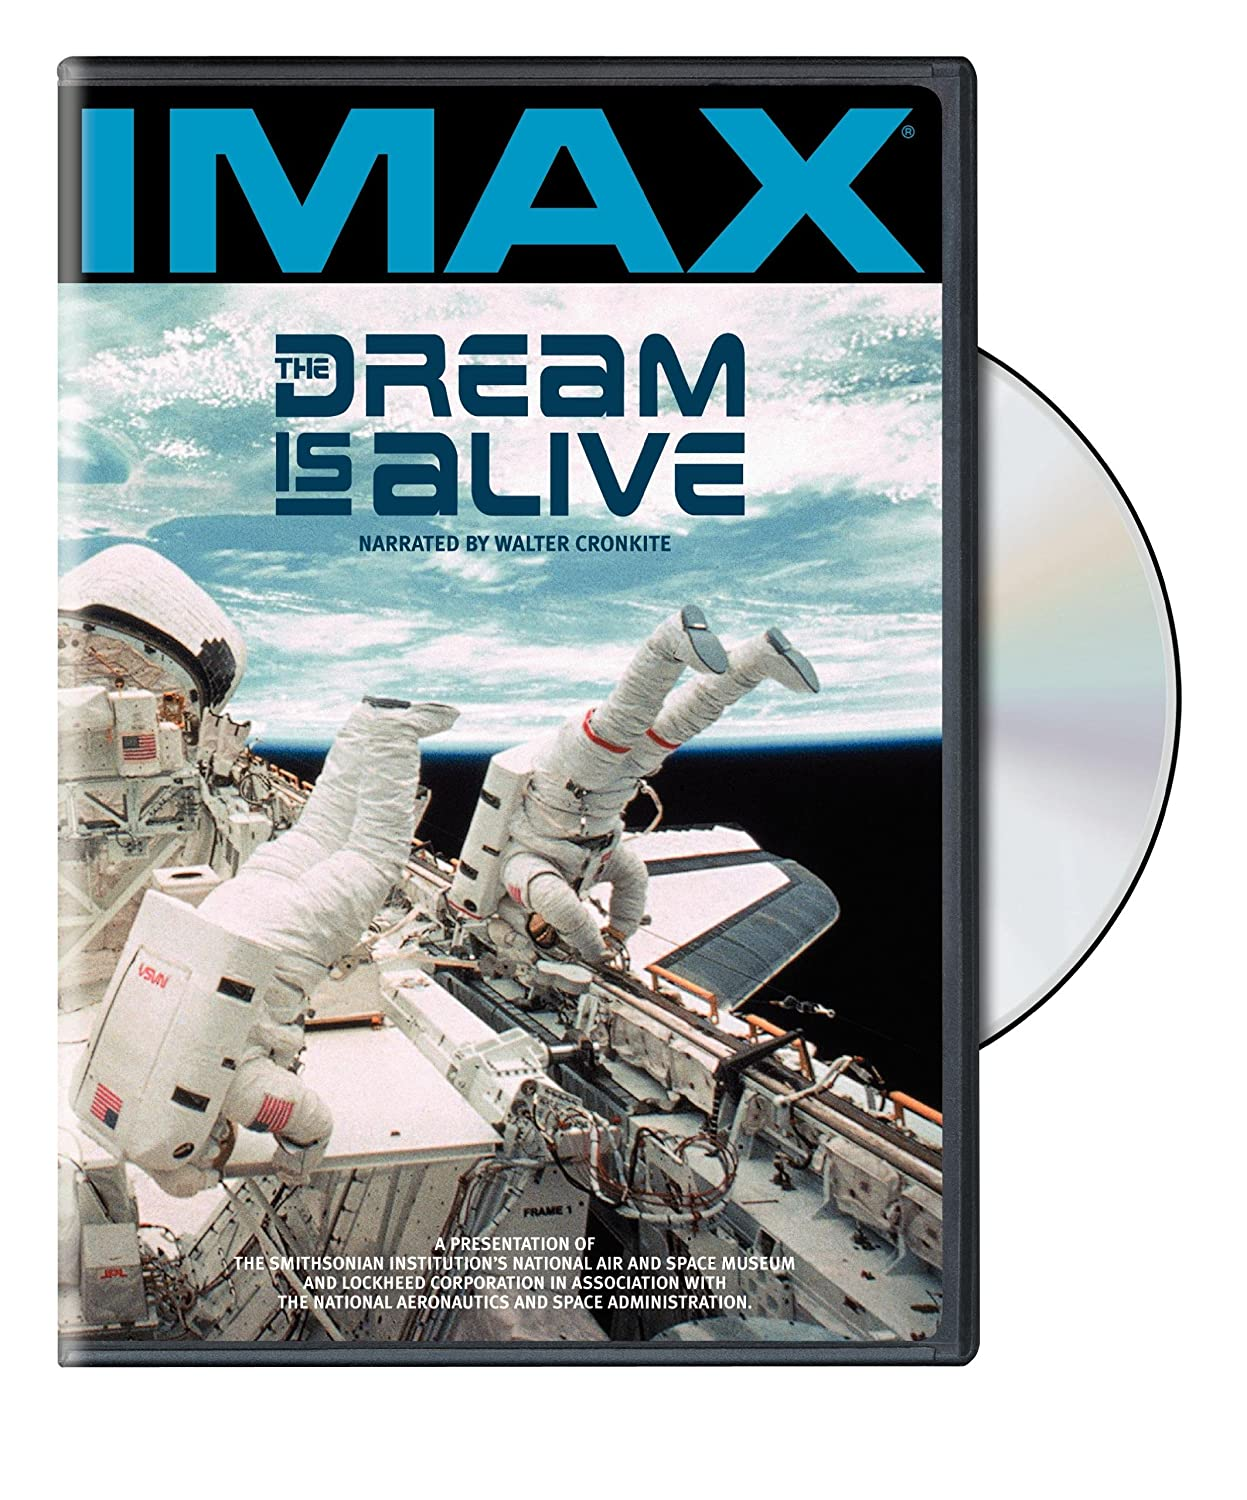 IMAX: The Dream is Alive Walter Cronkite Graeme Ferguson IMAX / Warner Home Video Documentary